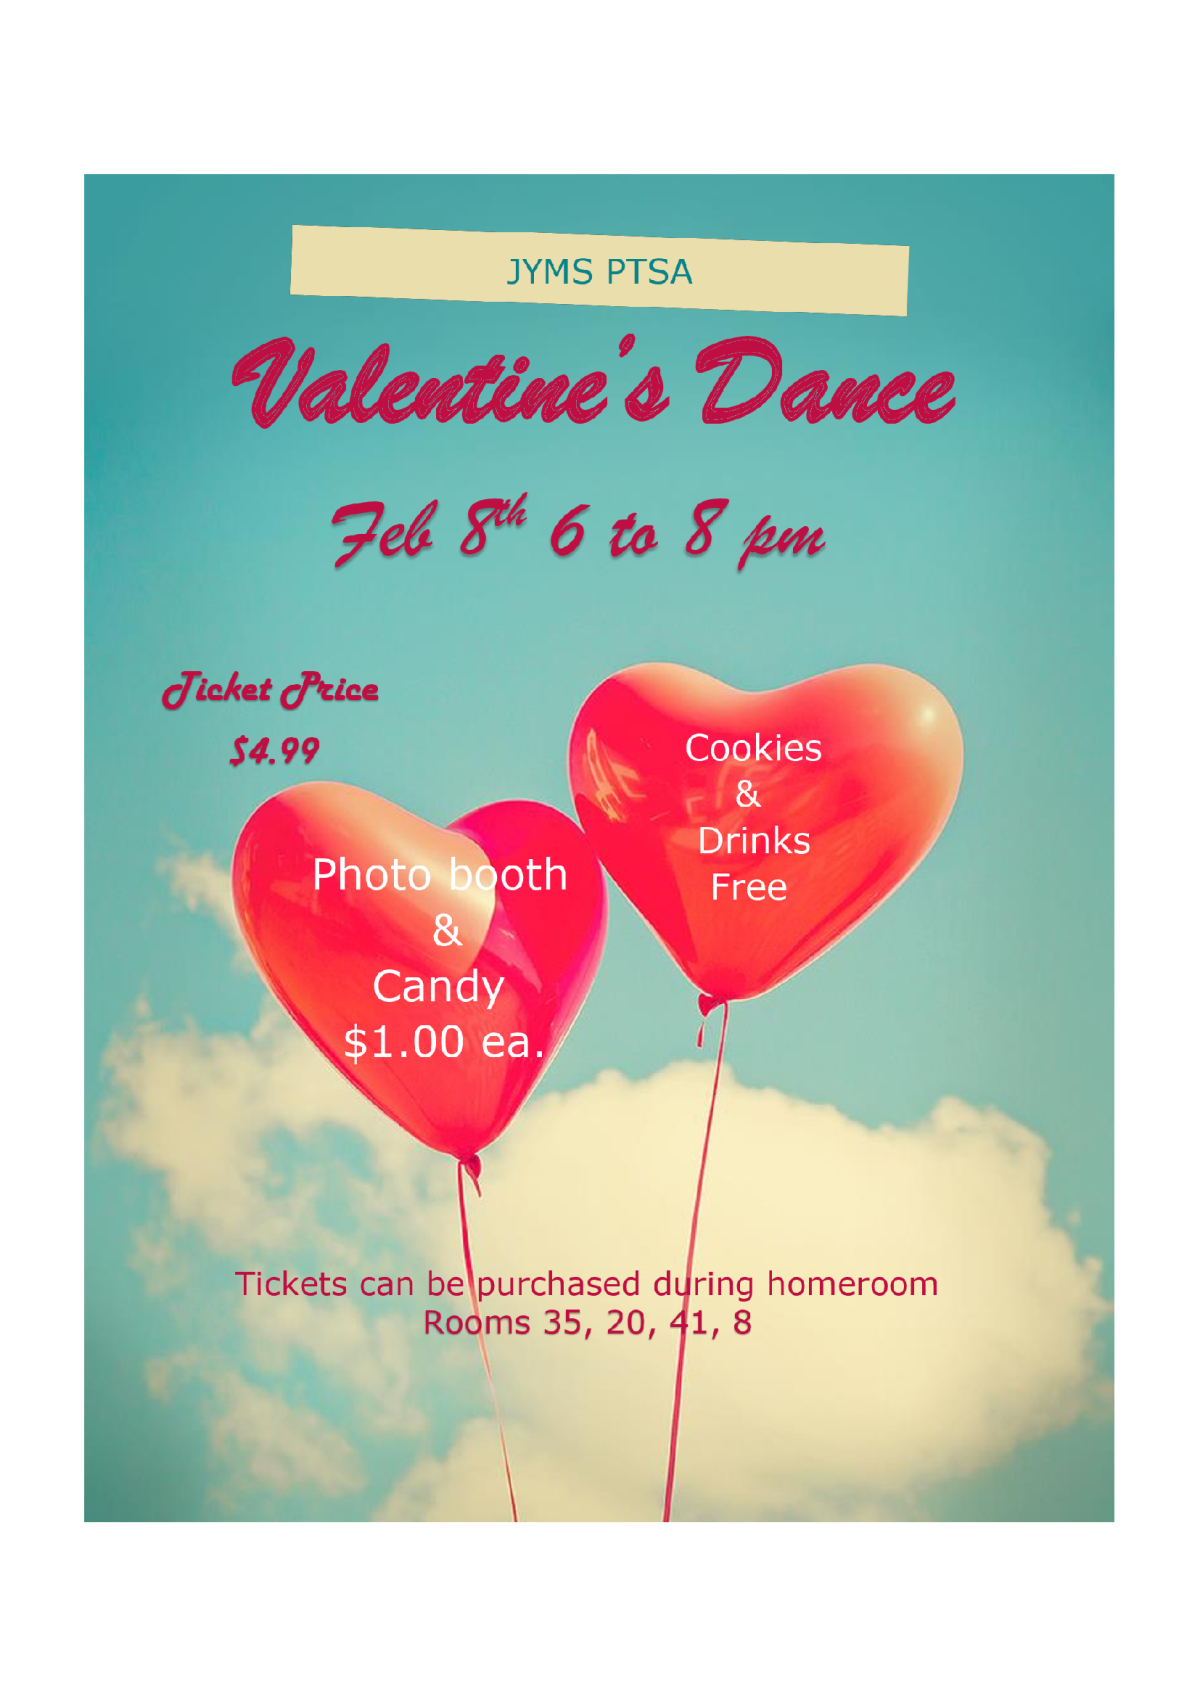 Image of a flyer titled Valentine's Dance